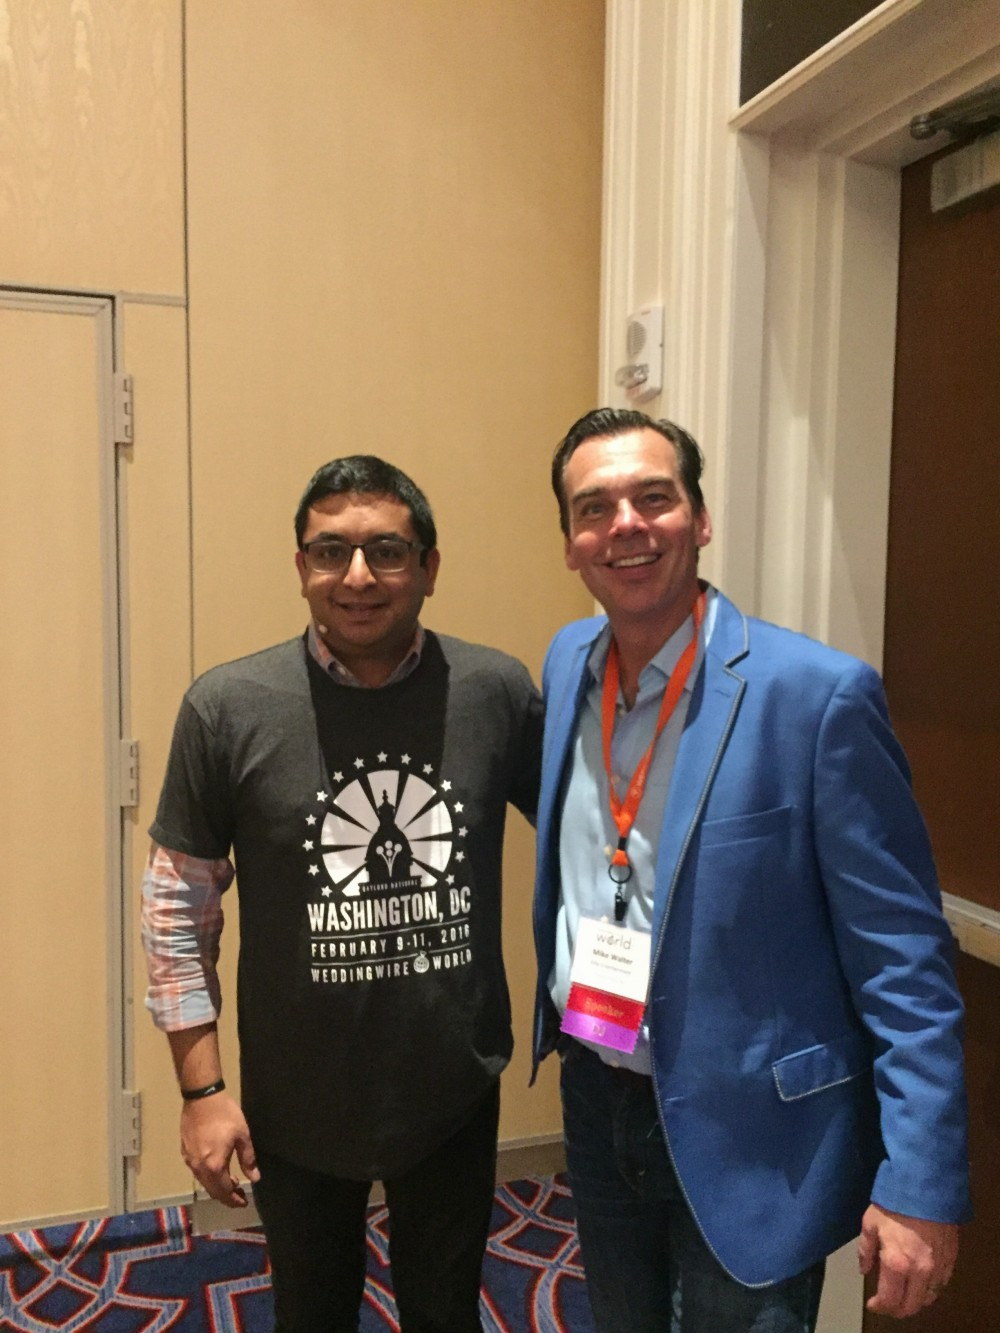 Mike Walter with WeddingWire CMO Sonny Ganguly